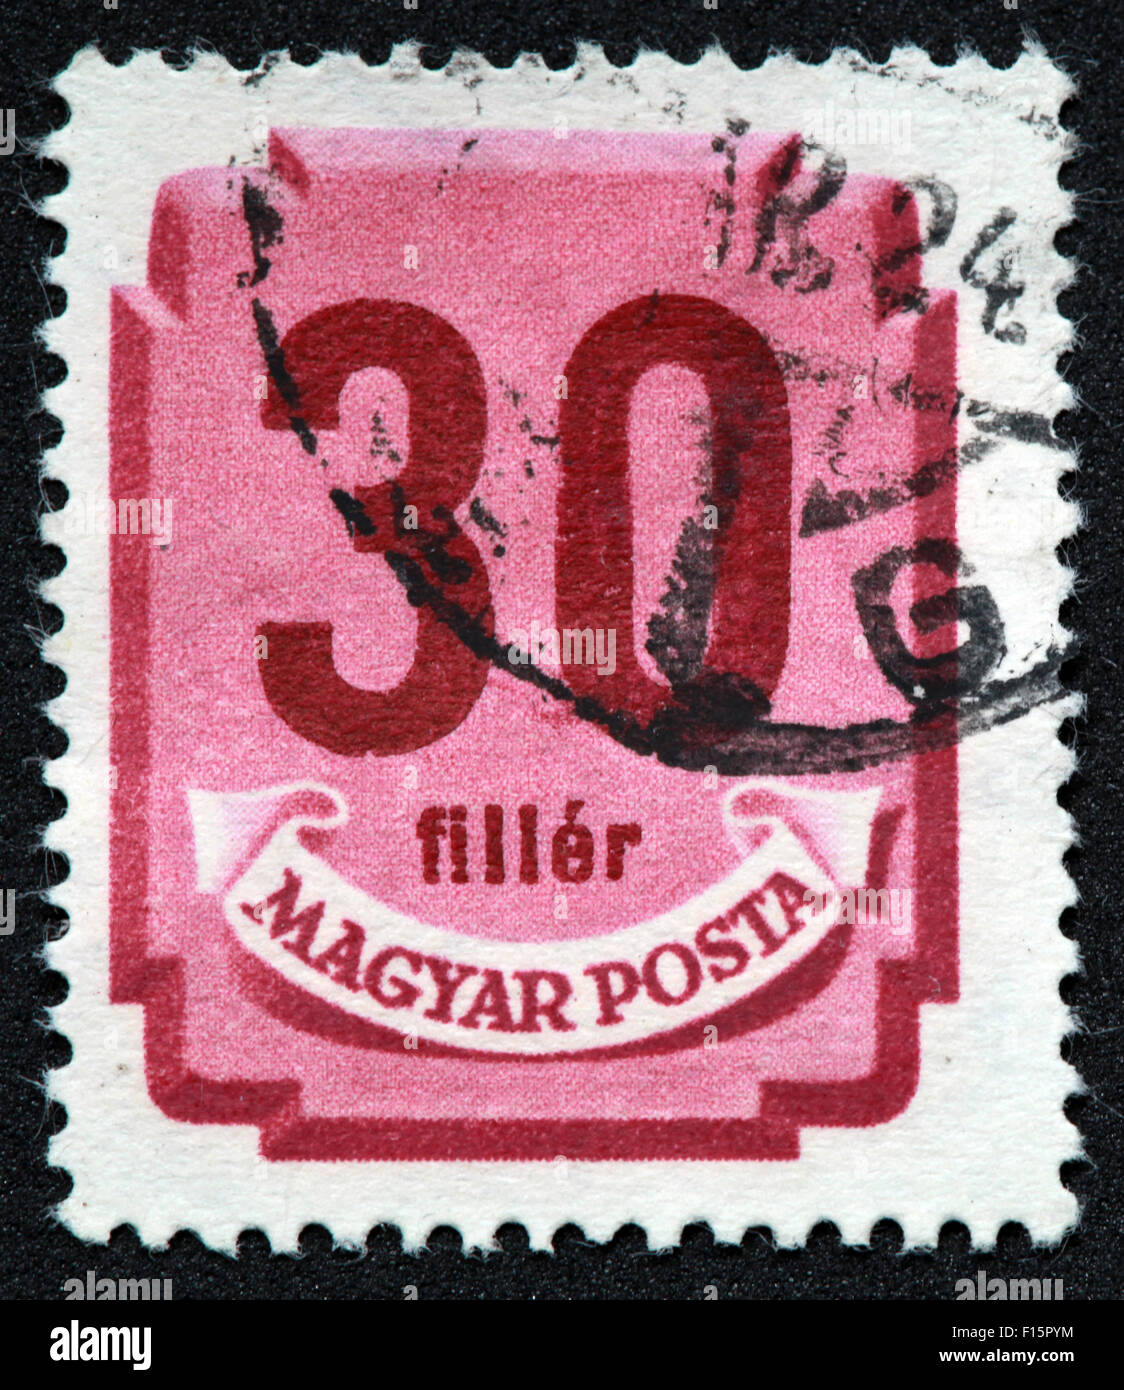 International Post,star,Used and Postmarked,Used,and,postmarked,perforated,stamp,Used,and,postmarked,Stamp,post,posting,mail,hobby,perforation,mark,postage,stamp,print,stamp,cancelled,stamp,payment,correspondence,postman,collection,collector,phila,USSR,Soviet,Bloc,Block,East,Eastern,Europe,Hungary,Hungarian,Gotonysmith,post,posting,mail,hobby,perforation,mark,postage,stamp,print,stamp,cancelled,canceled,stamp,payment,correspondence,postman,collection,collector,philately,philatelist,letter,price,history,retro,Australian,Vintage,delivery,date,relationship,communication,Oz,Australia,DownUnder,classic rare unique Austrailian financial,investment,invest,value,British,empire,nation,canceled,printed on black background,close-up,closeup,close,up,sent,send,philately,mailing,shipping,postoffice,office,isolated,circa,special,colour,color,postmarked,marked,airmail,aged,antique,retro,cutting,historic,old,stamps,collection,stamp collection,album,Timbre,Sello,Stempel,Selo,Buy Pictures of,Buy Images Of,Down Under,Black background